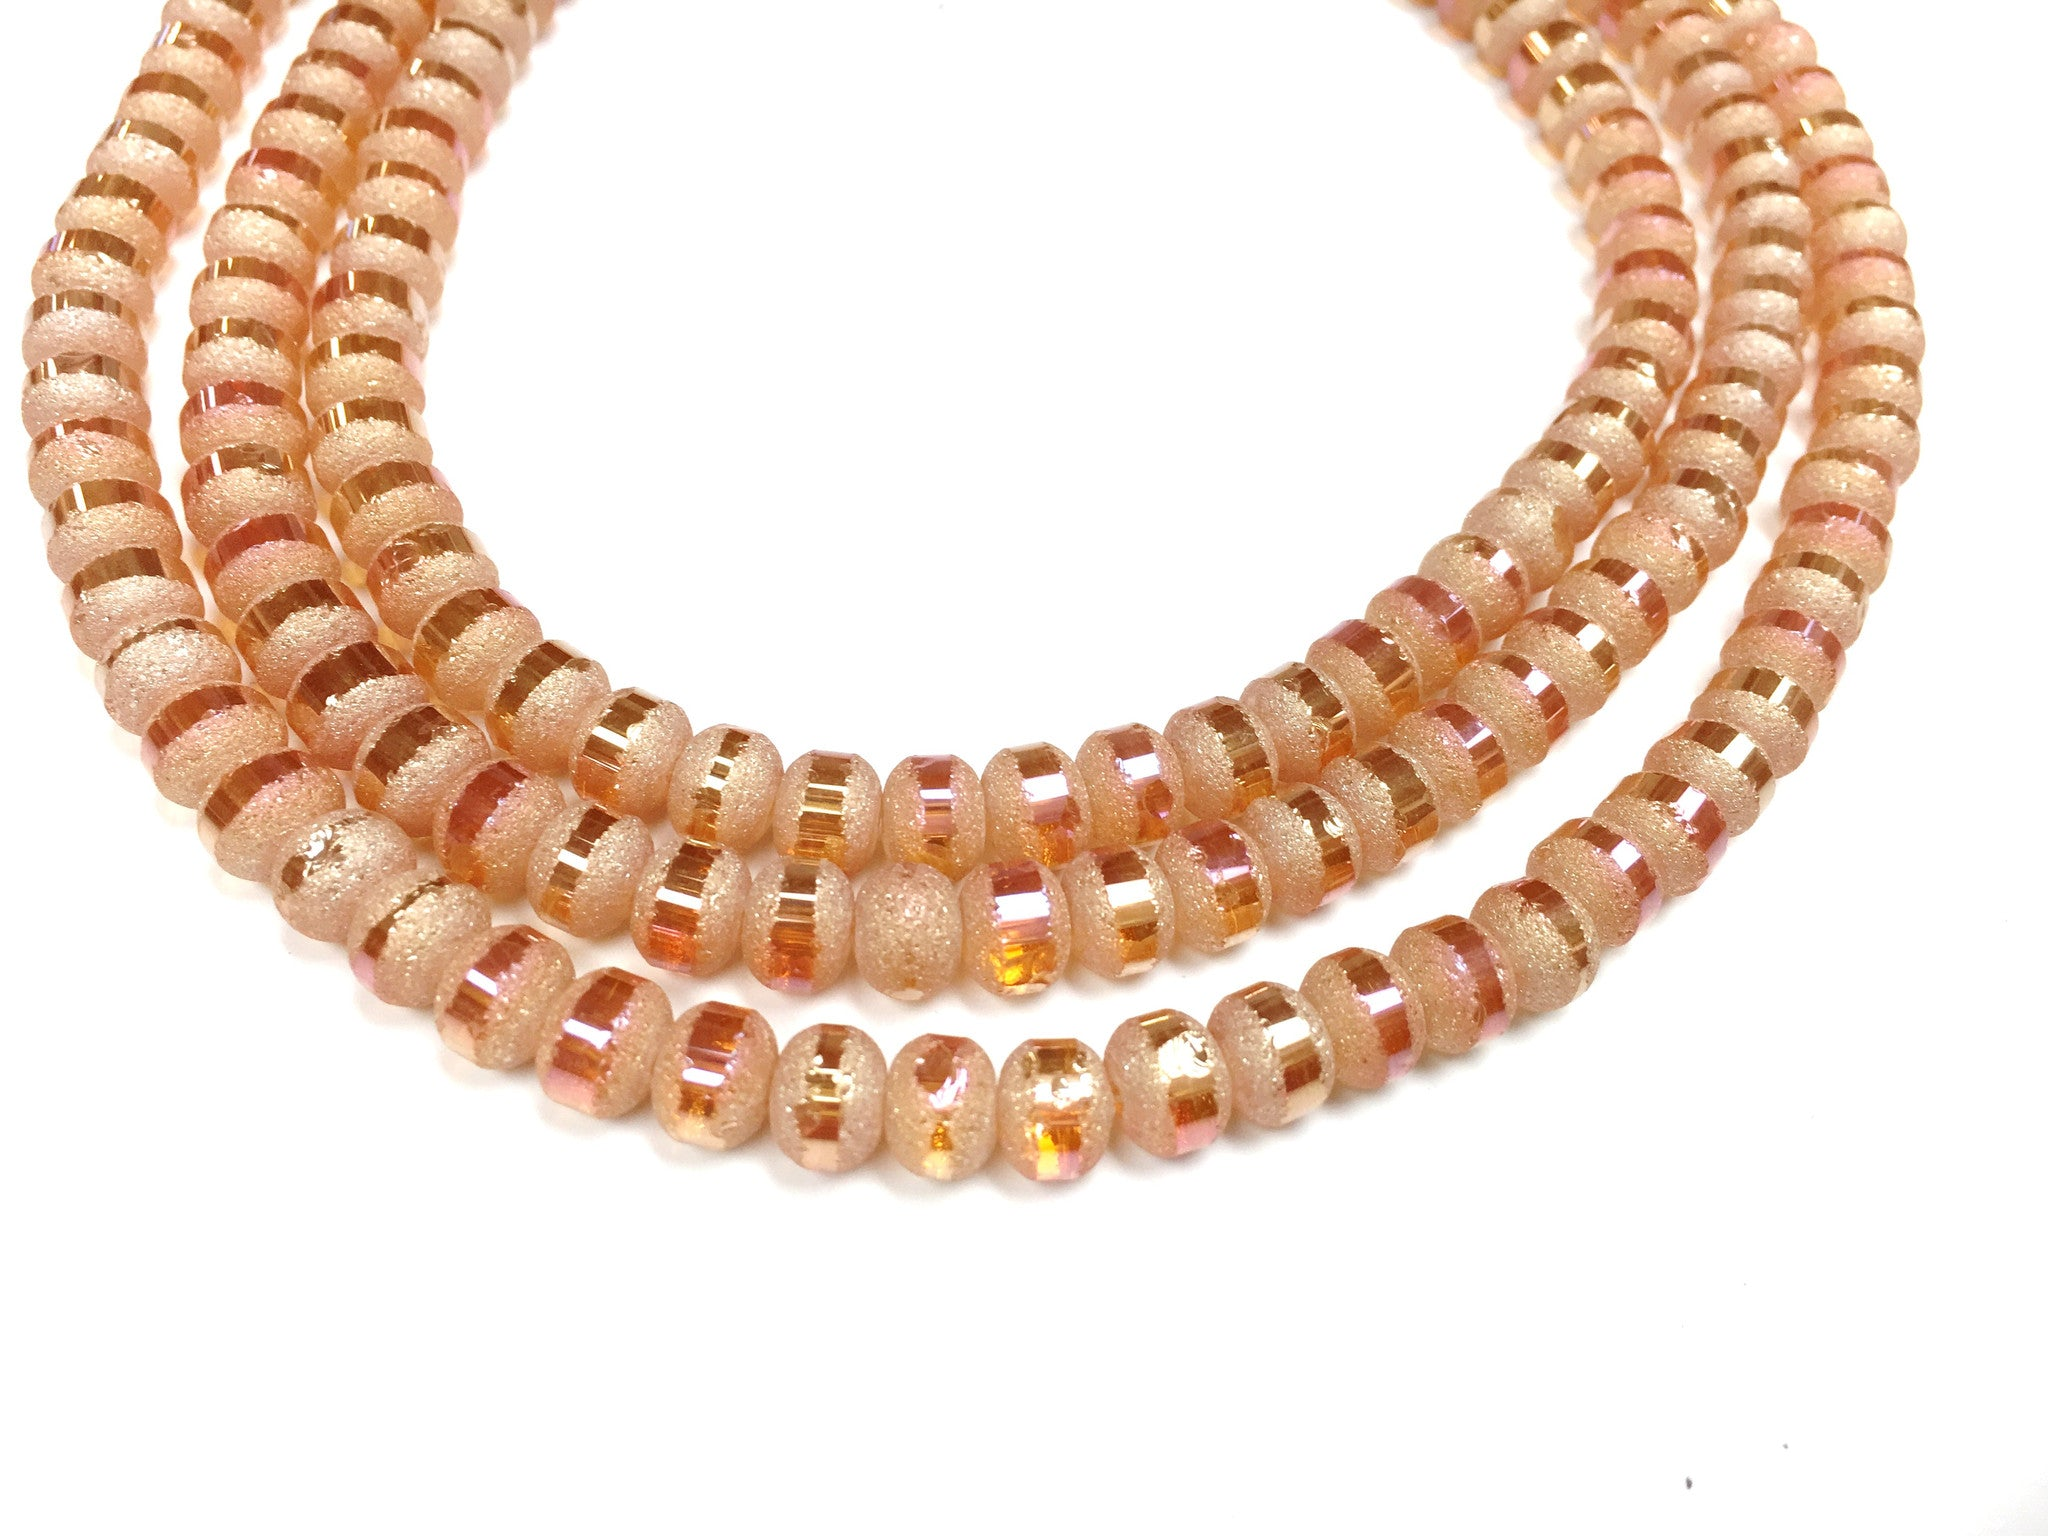 A&SB Crystal Orbits - 7x9mm Silk Med Amber Matte Striped Rondelle Beads - 16 inch strand